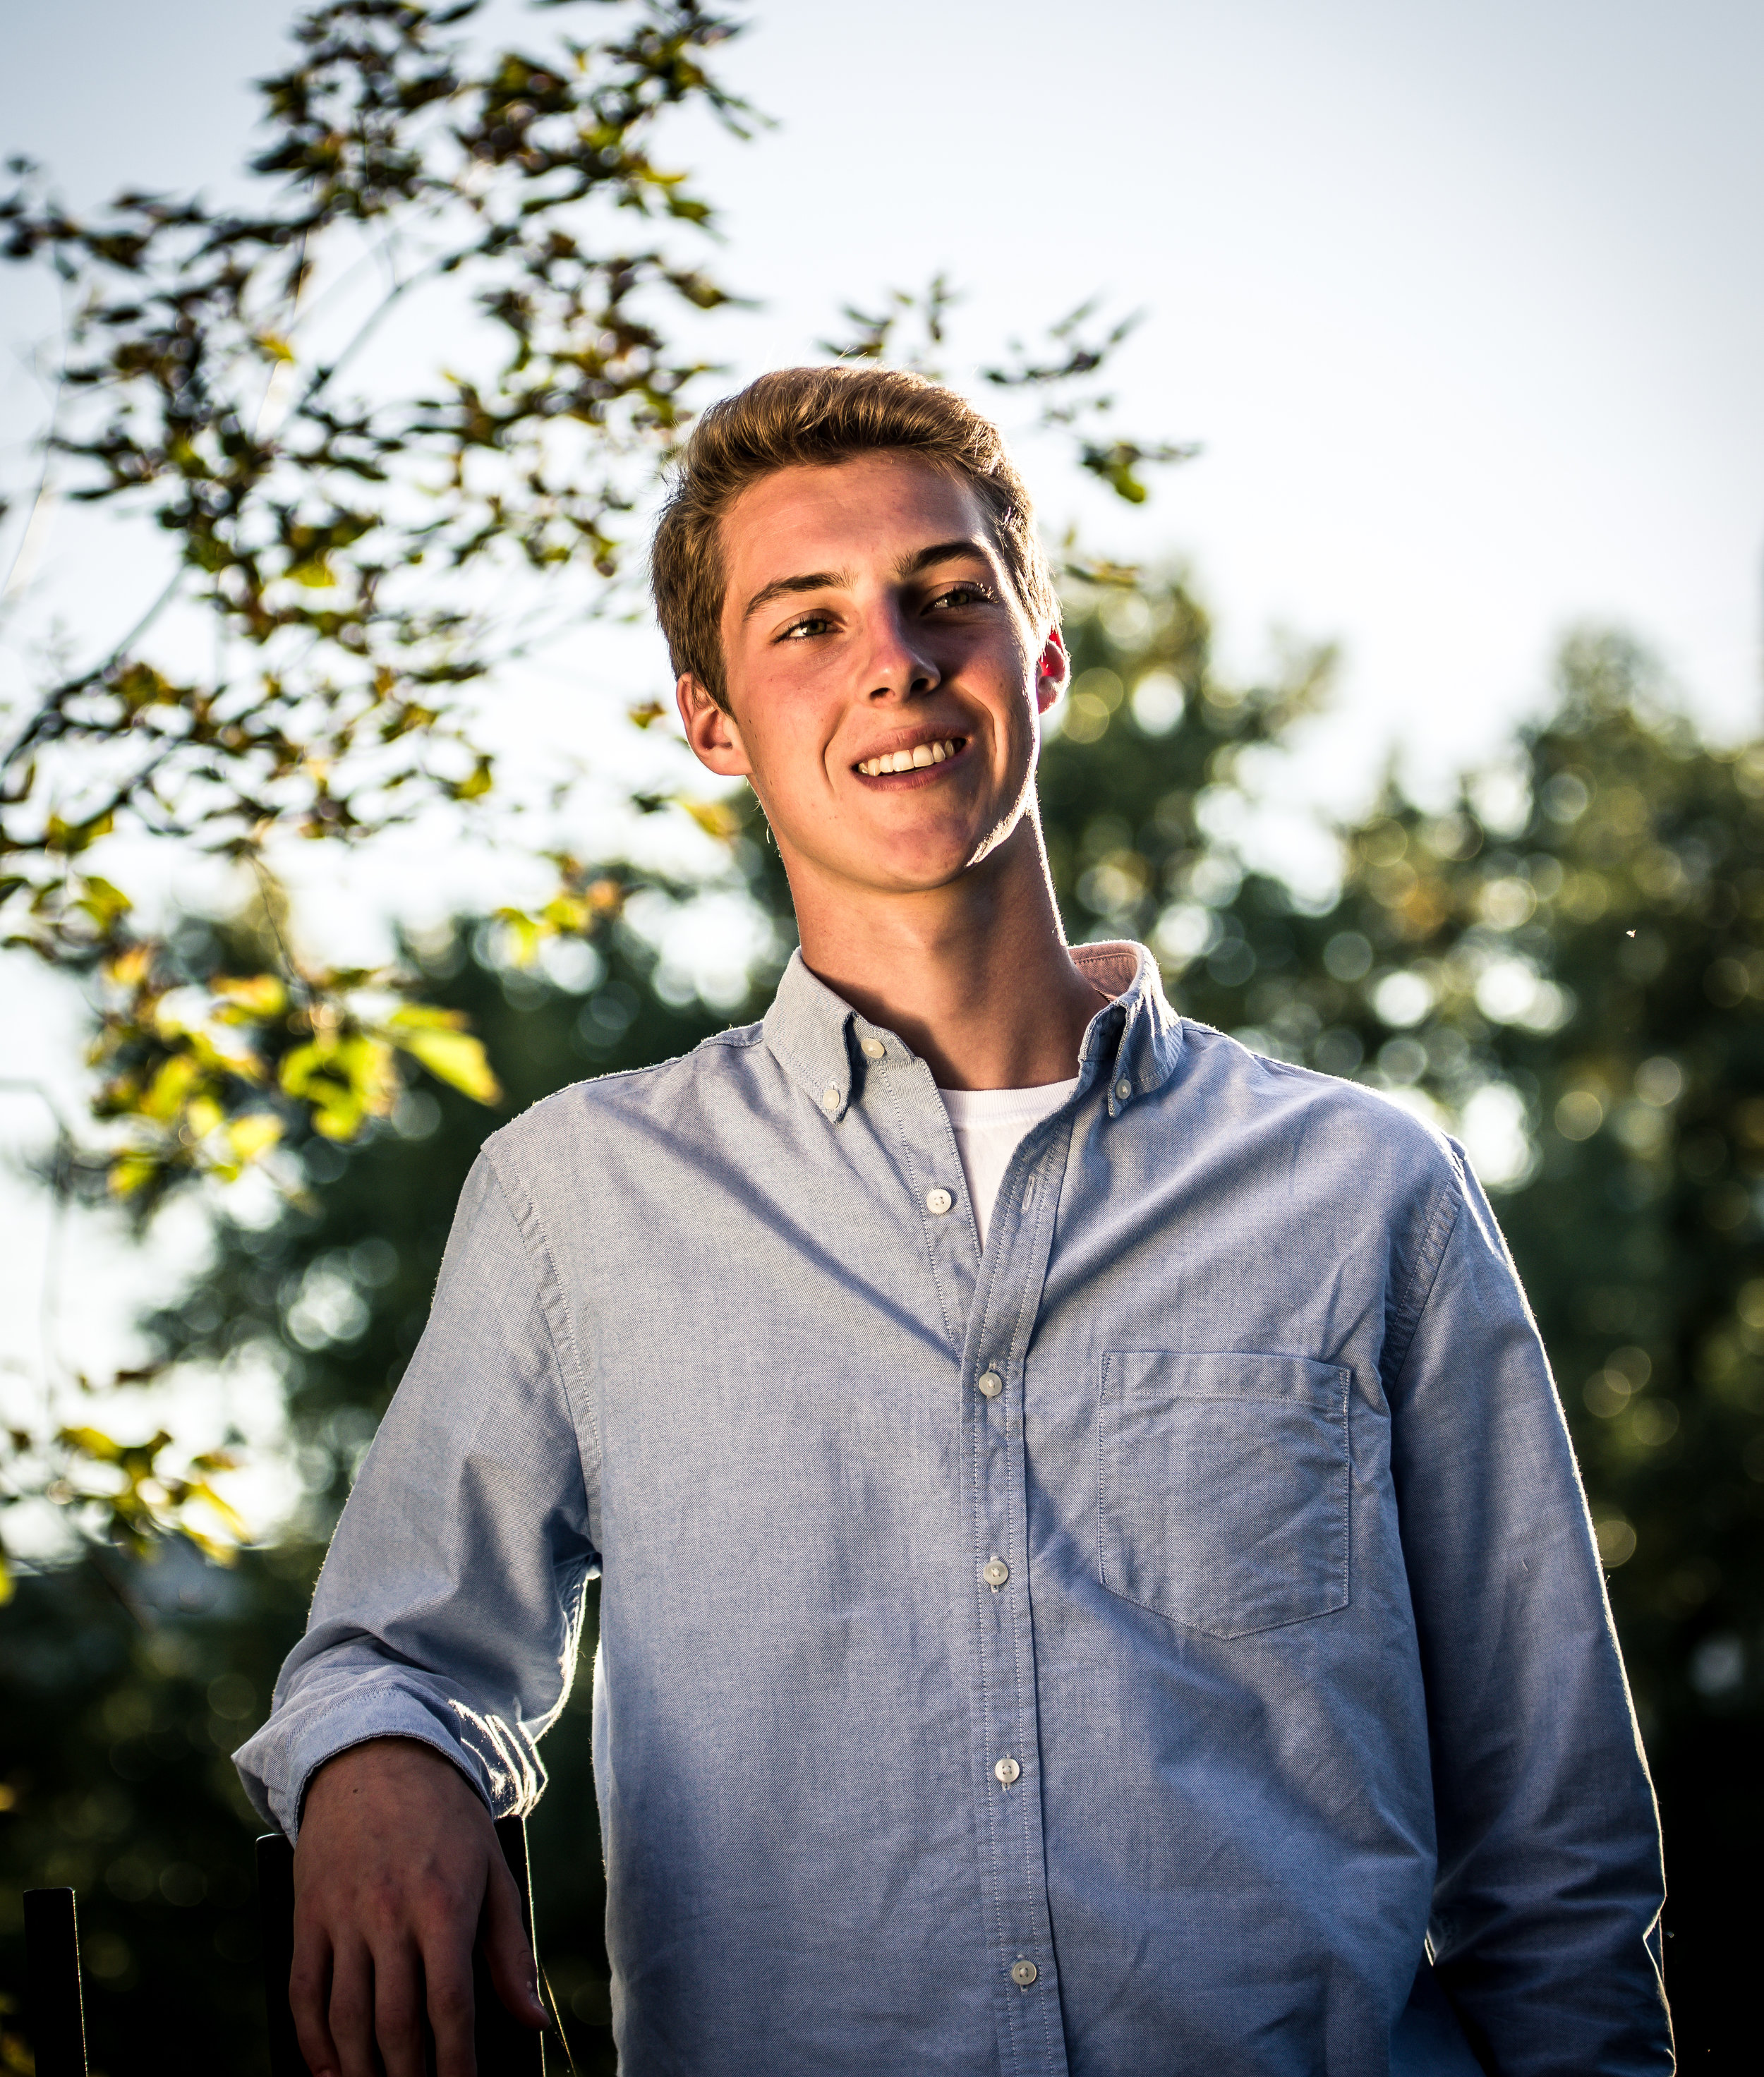 ryan k senior photos (119 of 331).jpg